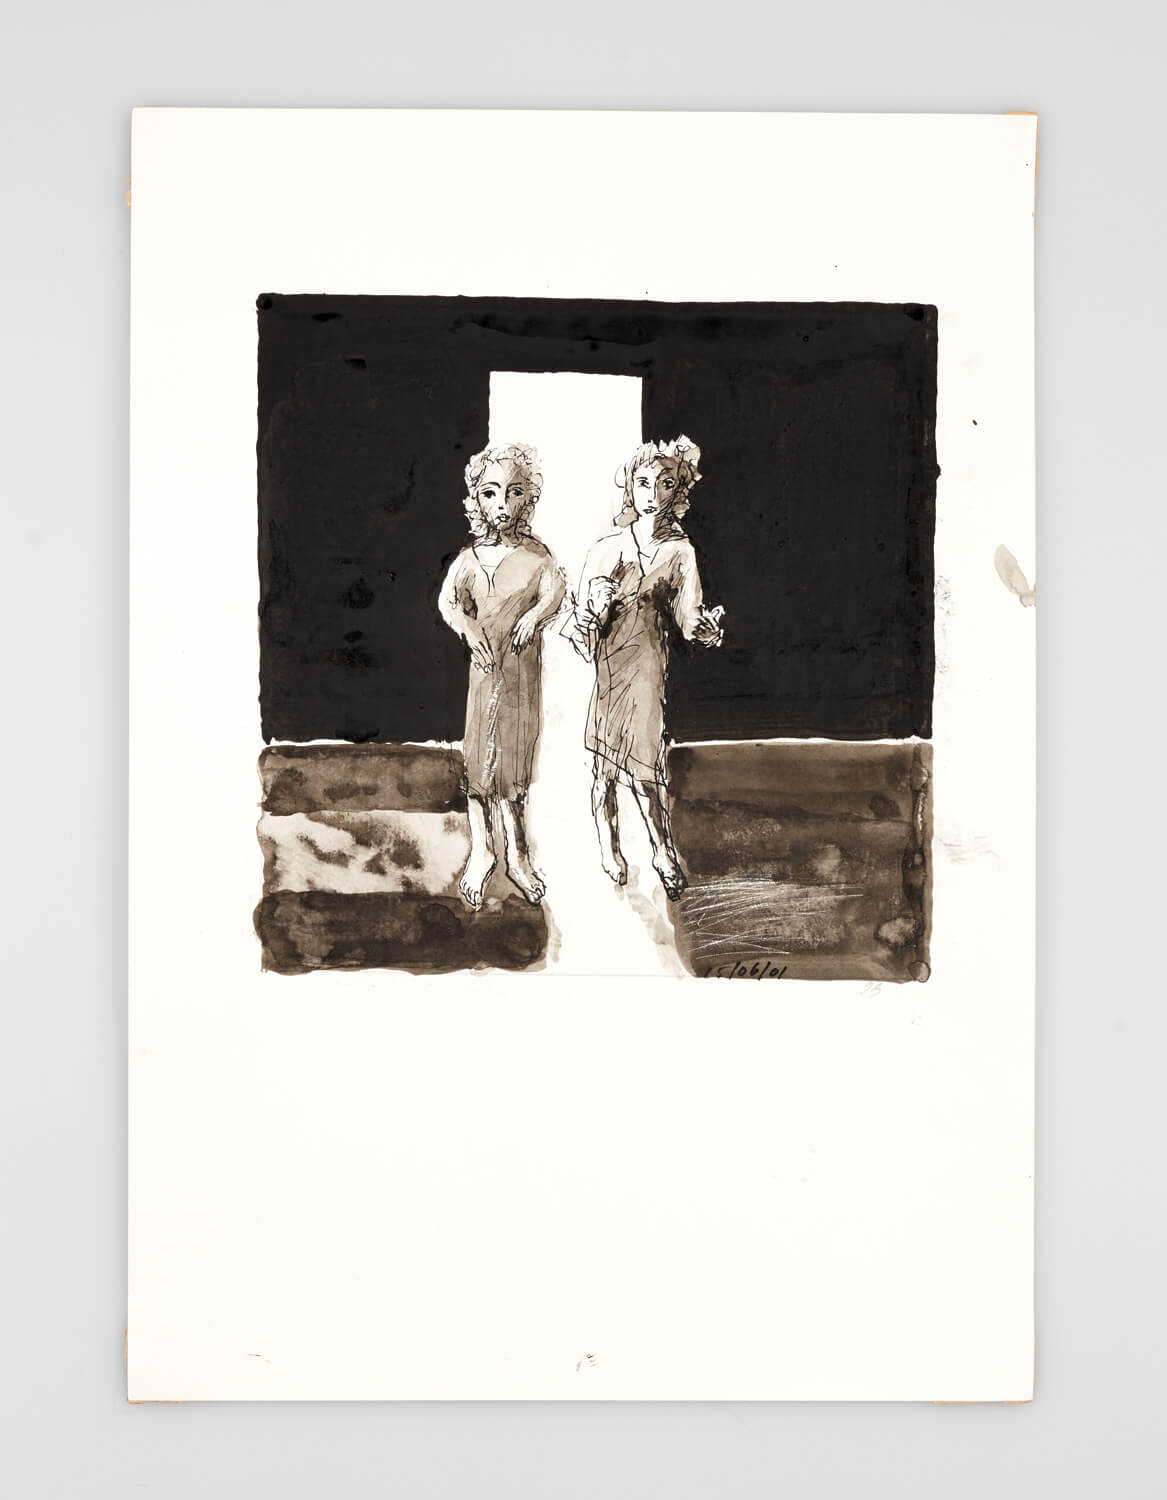 JB007 - Two Women: It looks perfect - 2001 - 50 x 35 cm - Indian ink and wash on paper